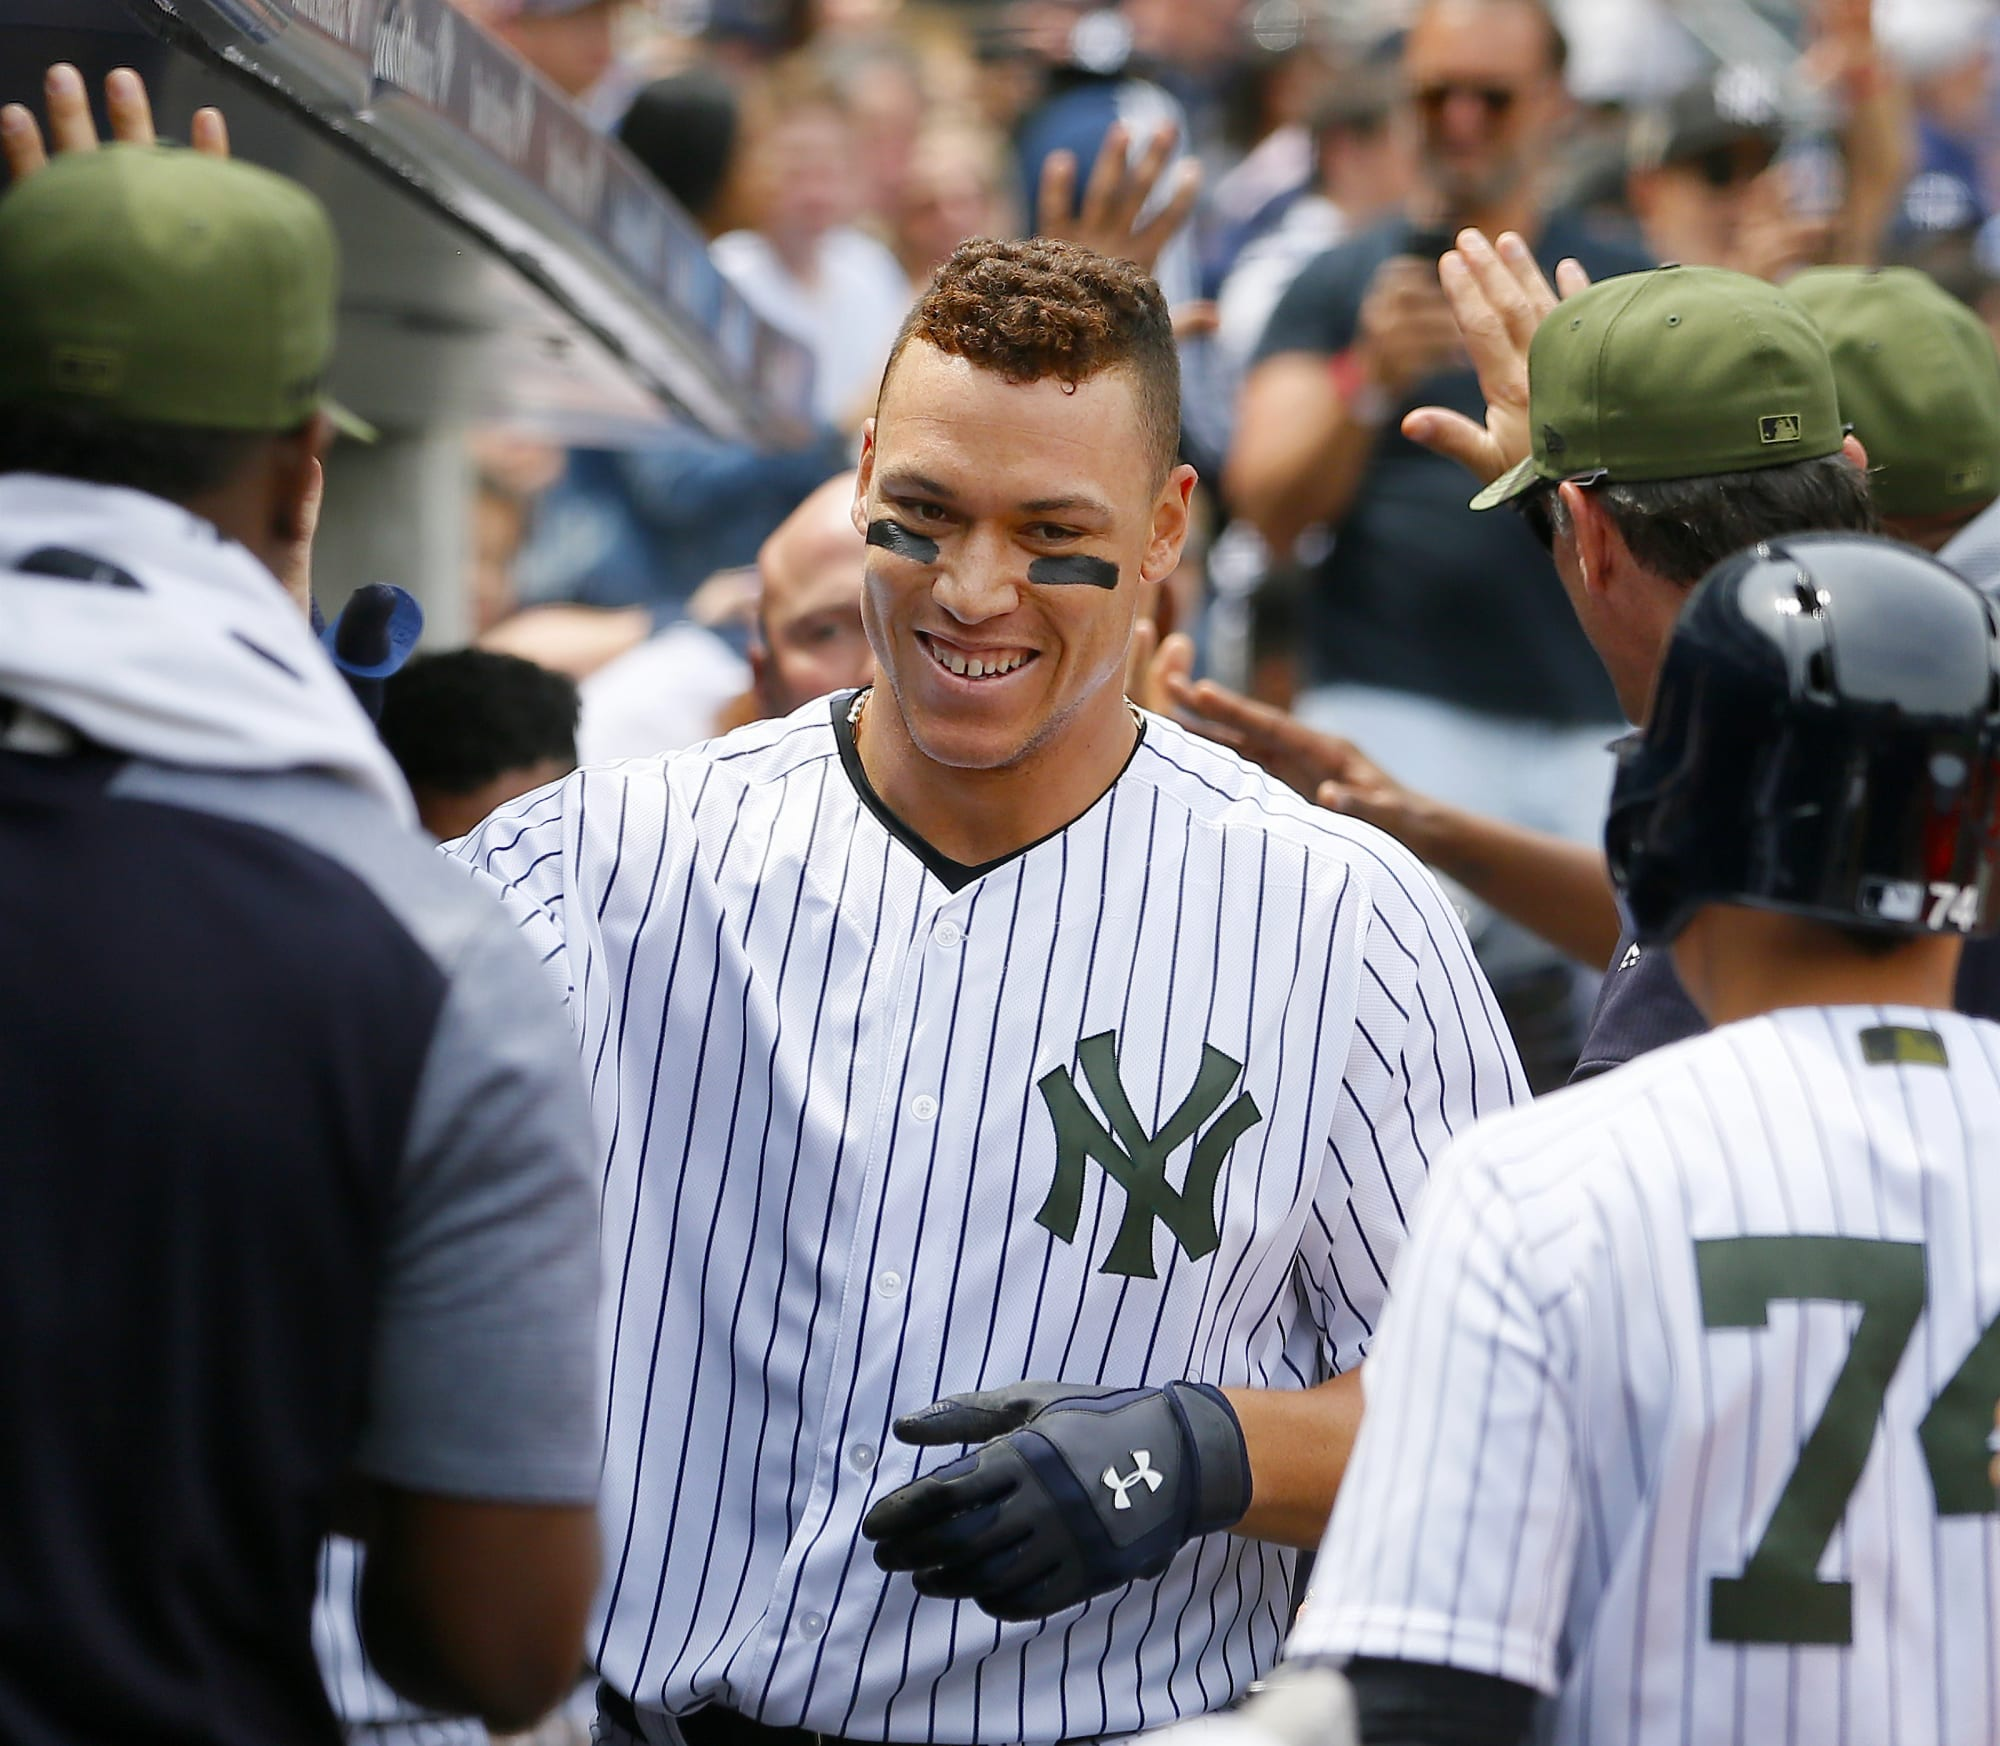 Yankees: NYY Twitter Account Drops Hilarious Commercial Starring Aaron Judge